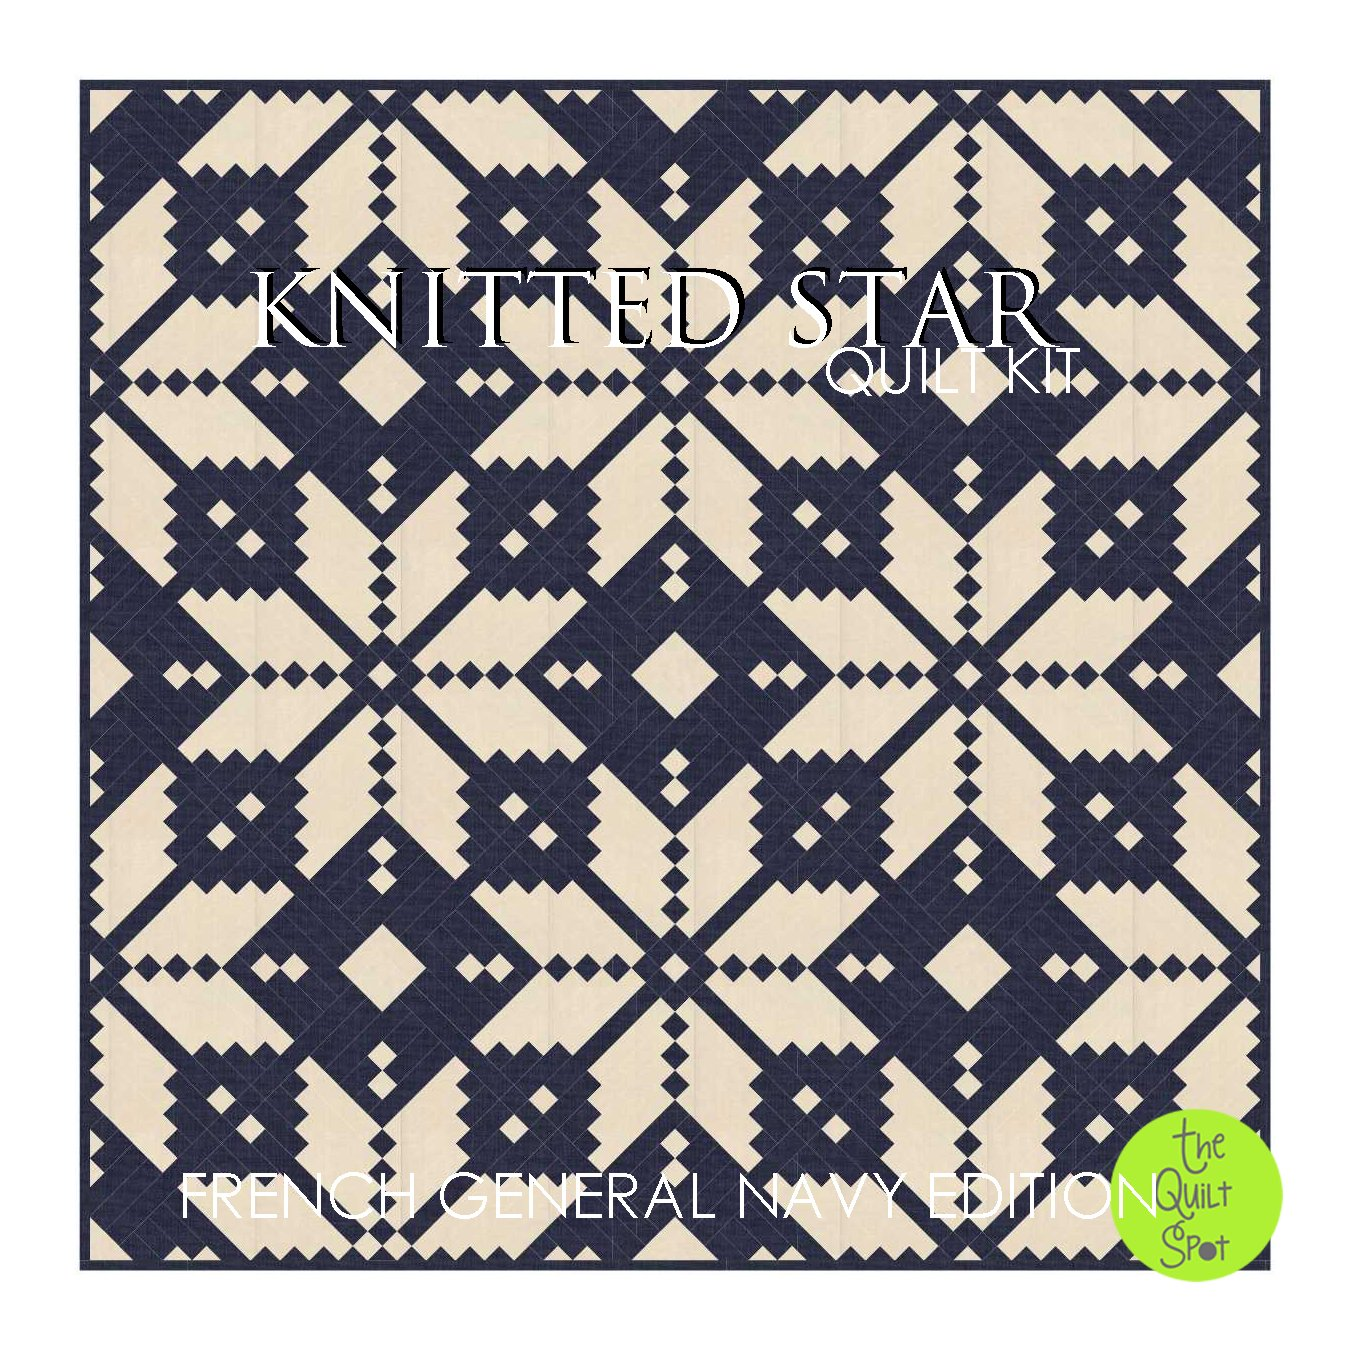 Knitted Star Quilt Kit - French General Navy Edition